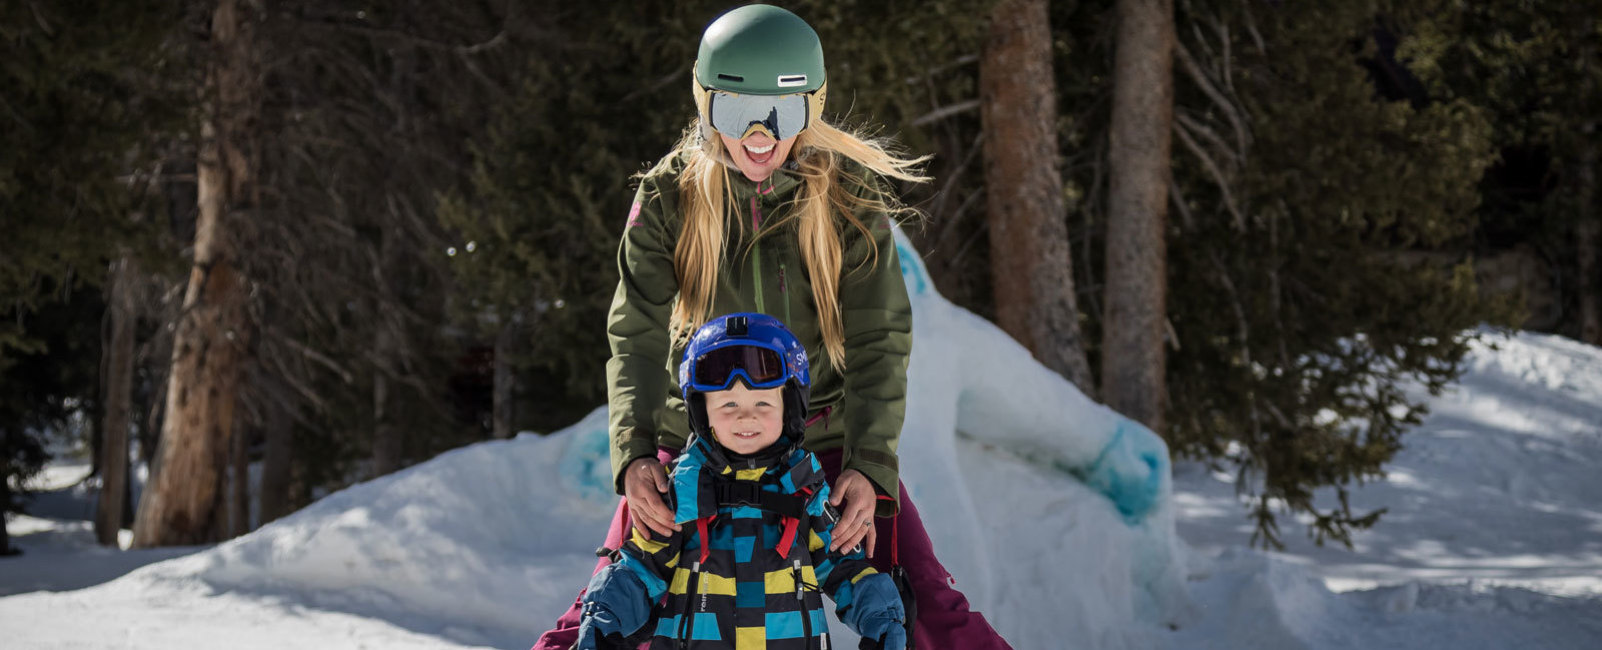 Growing a Skier at Brighton: One of Utah's Favorite Resorts for Beginners